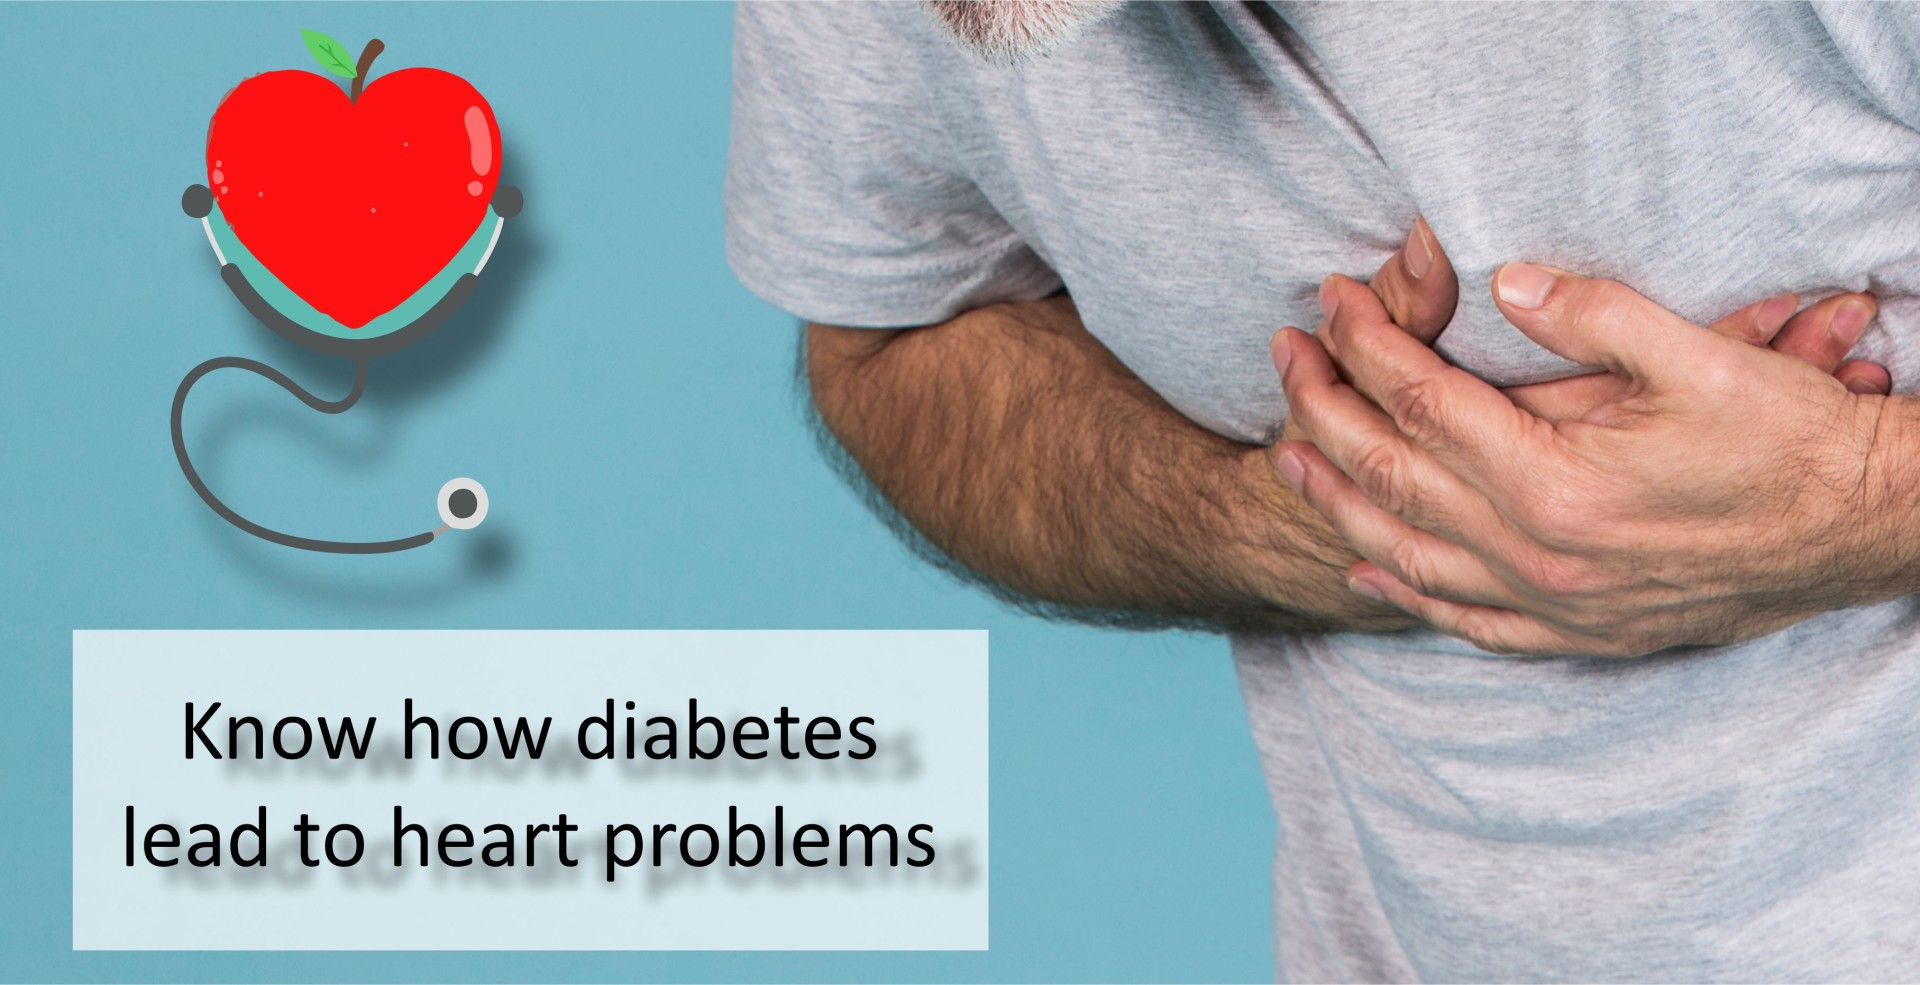 Know how diabetes lead to heart problems